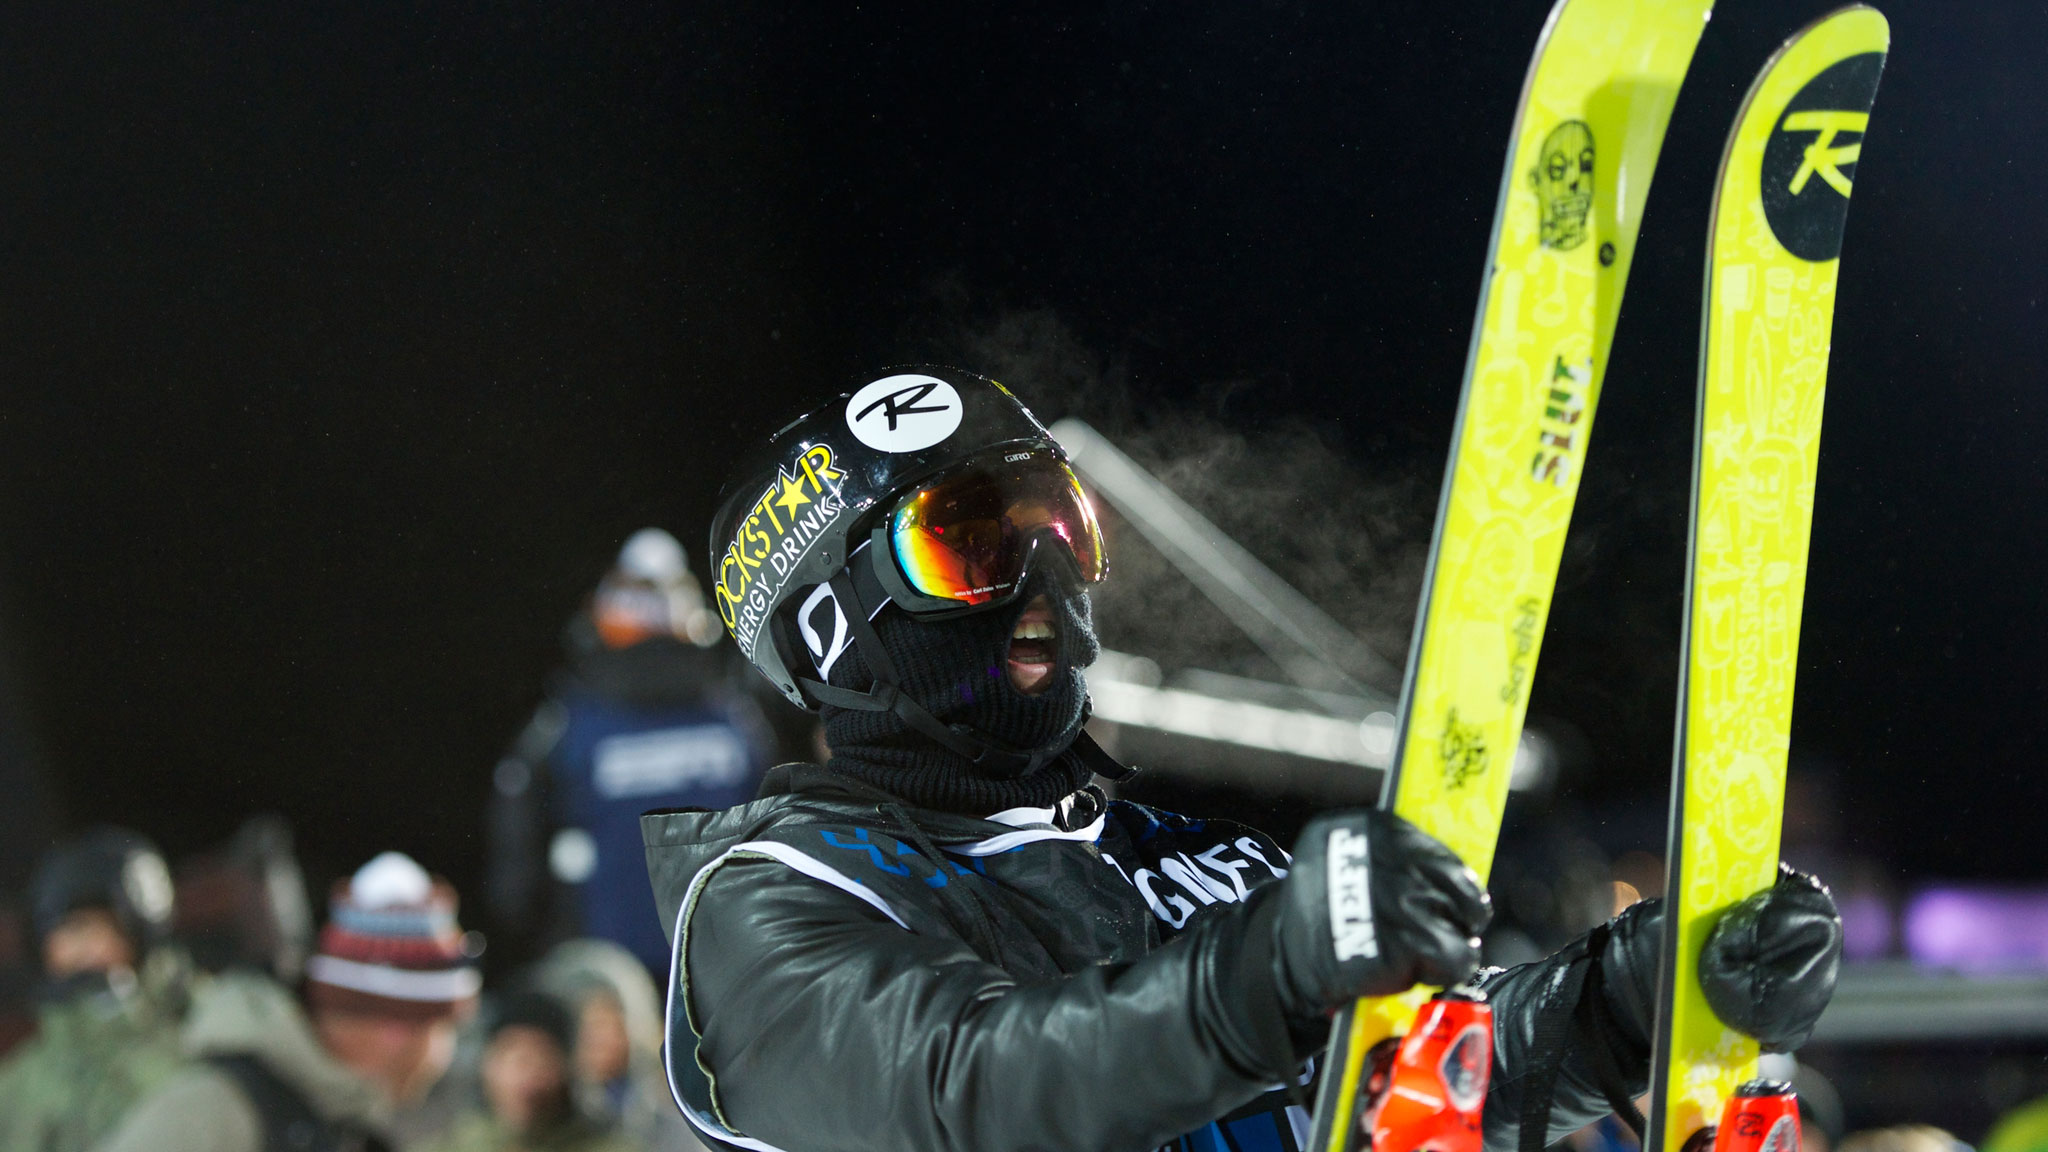 French halfpipe skier Joffrey Pollet-Villard in his face mask and leather jacket at X Games Tignes.